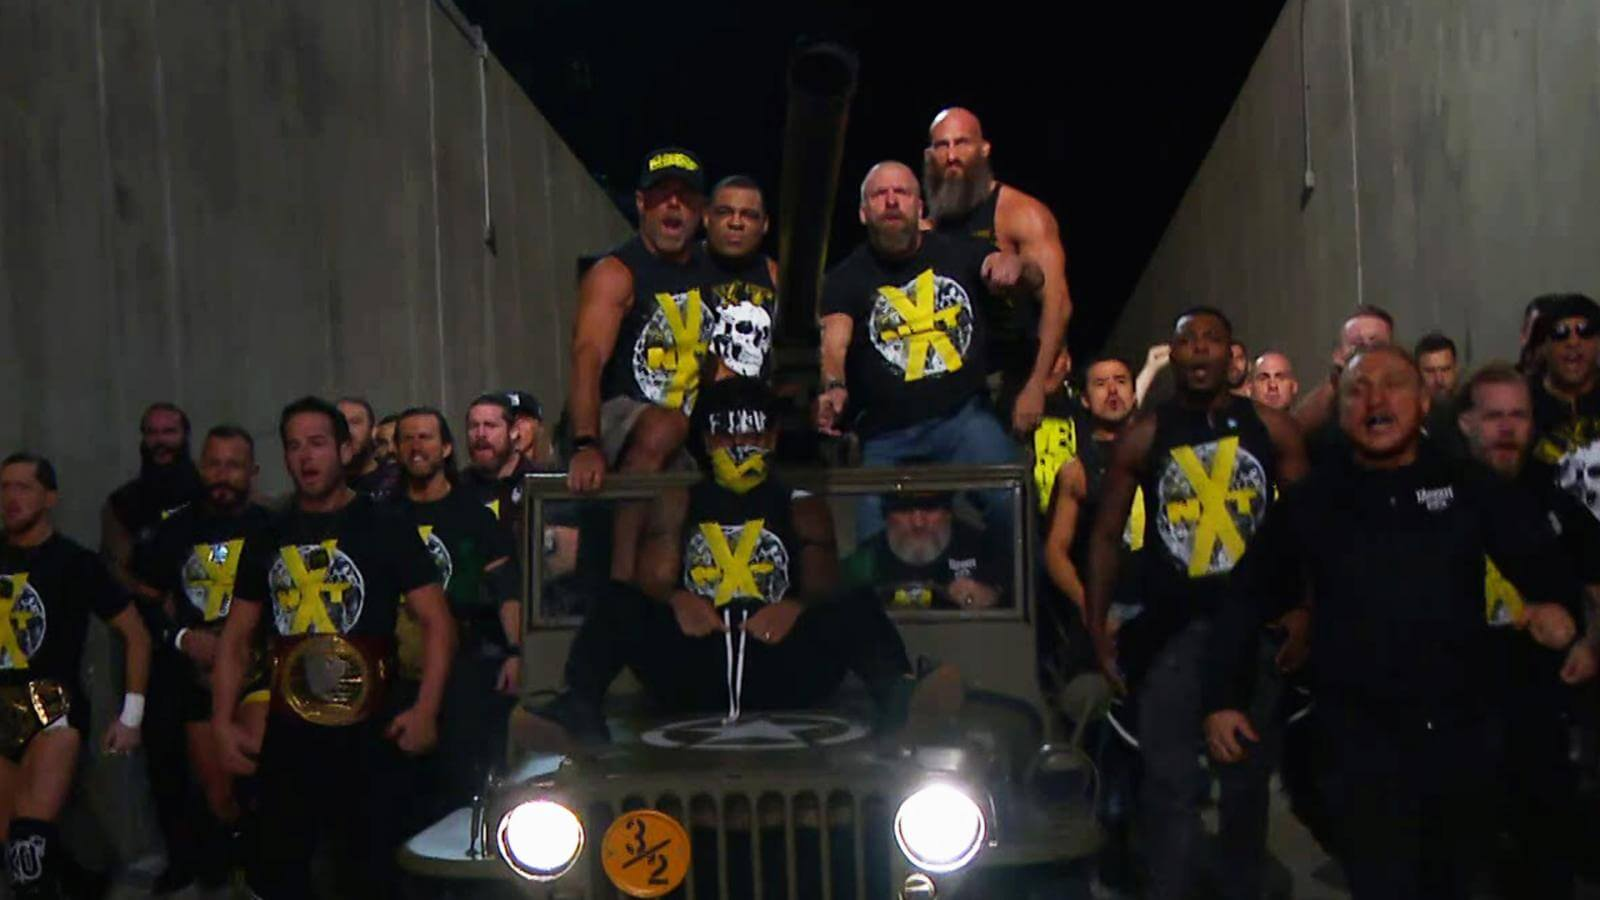 NXT once again made an entrance